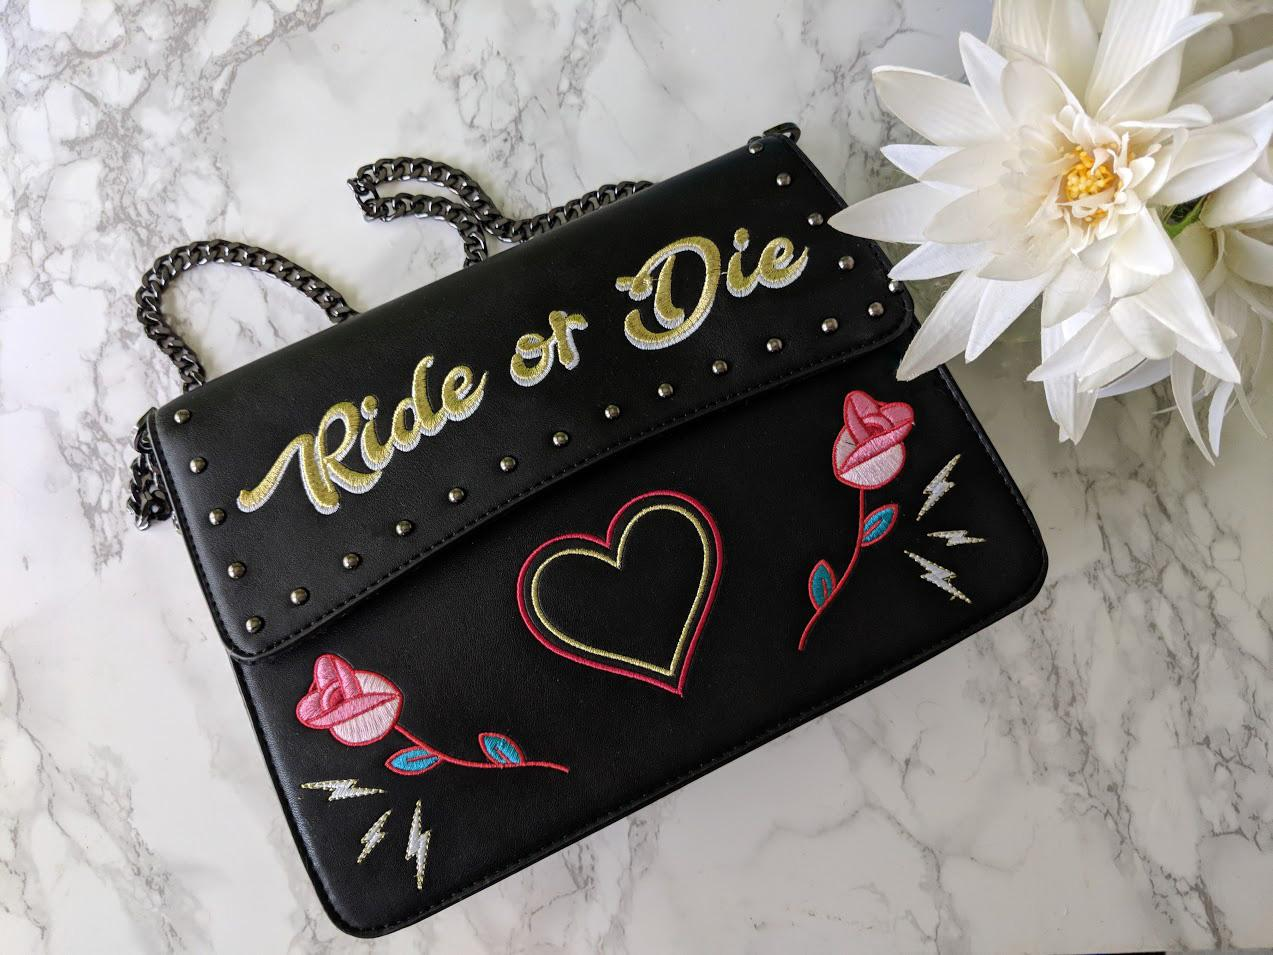 Skinnydip London Ride or Die Bag